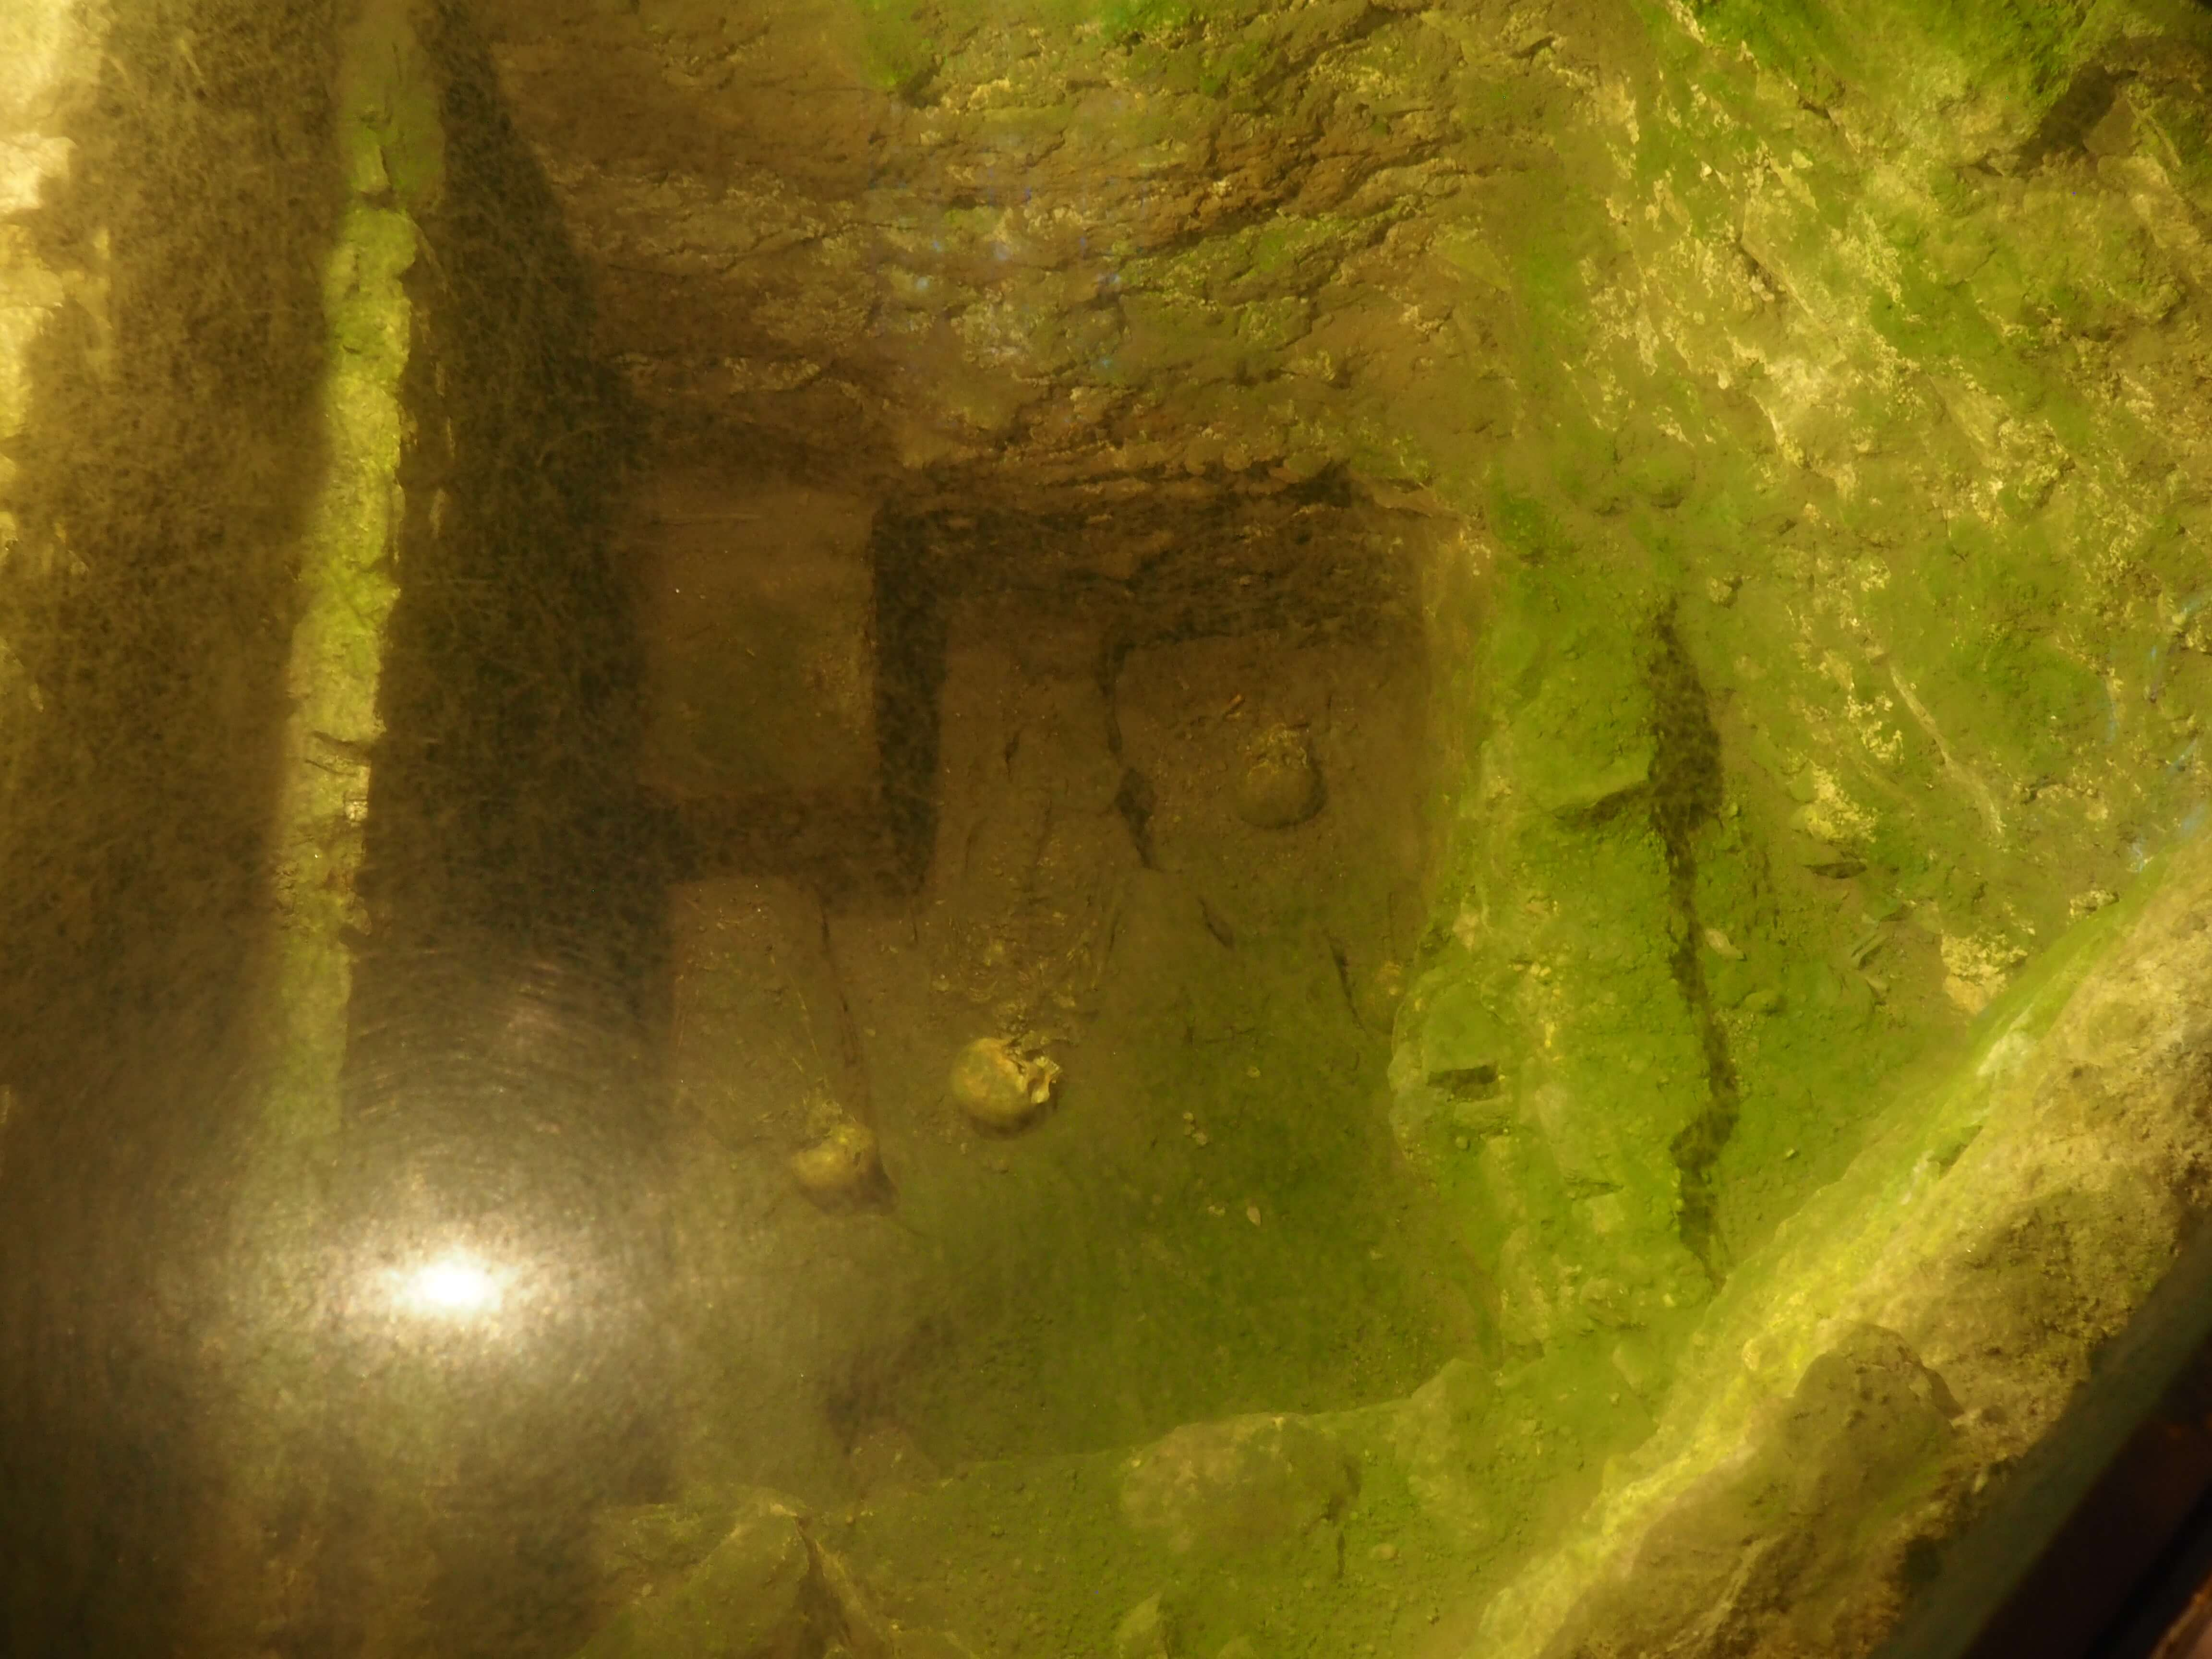 View through glass panels of two skeletons in excavated cemetery.